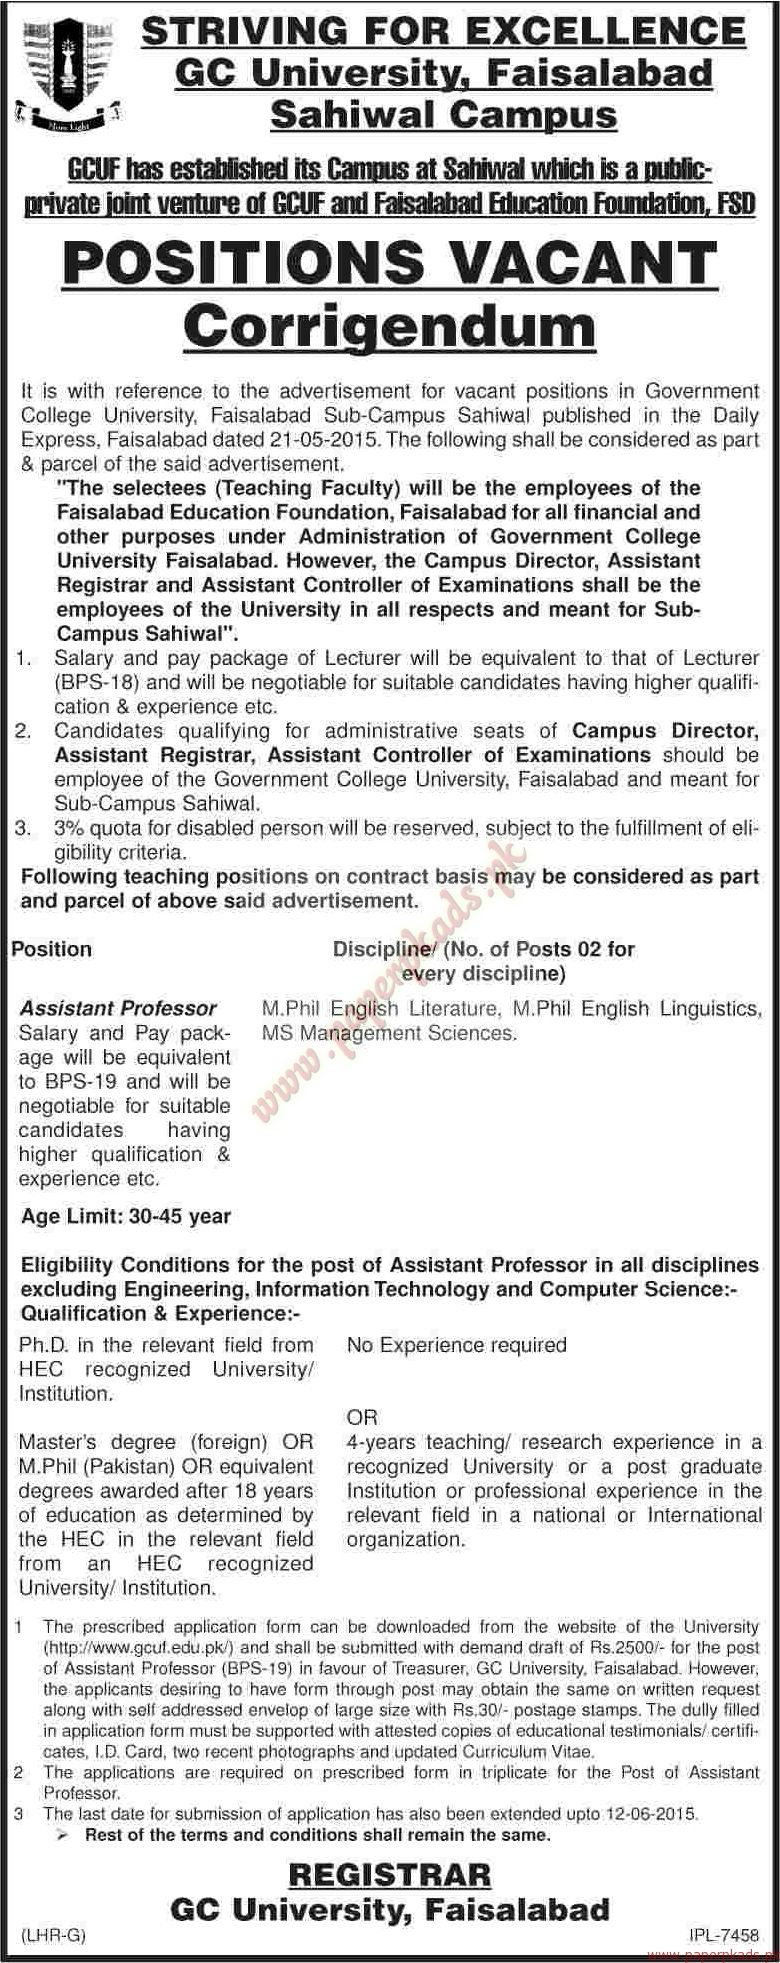 GC University Faisalabad Jobs  - Dawn Jobs ads 04 June 2015